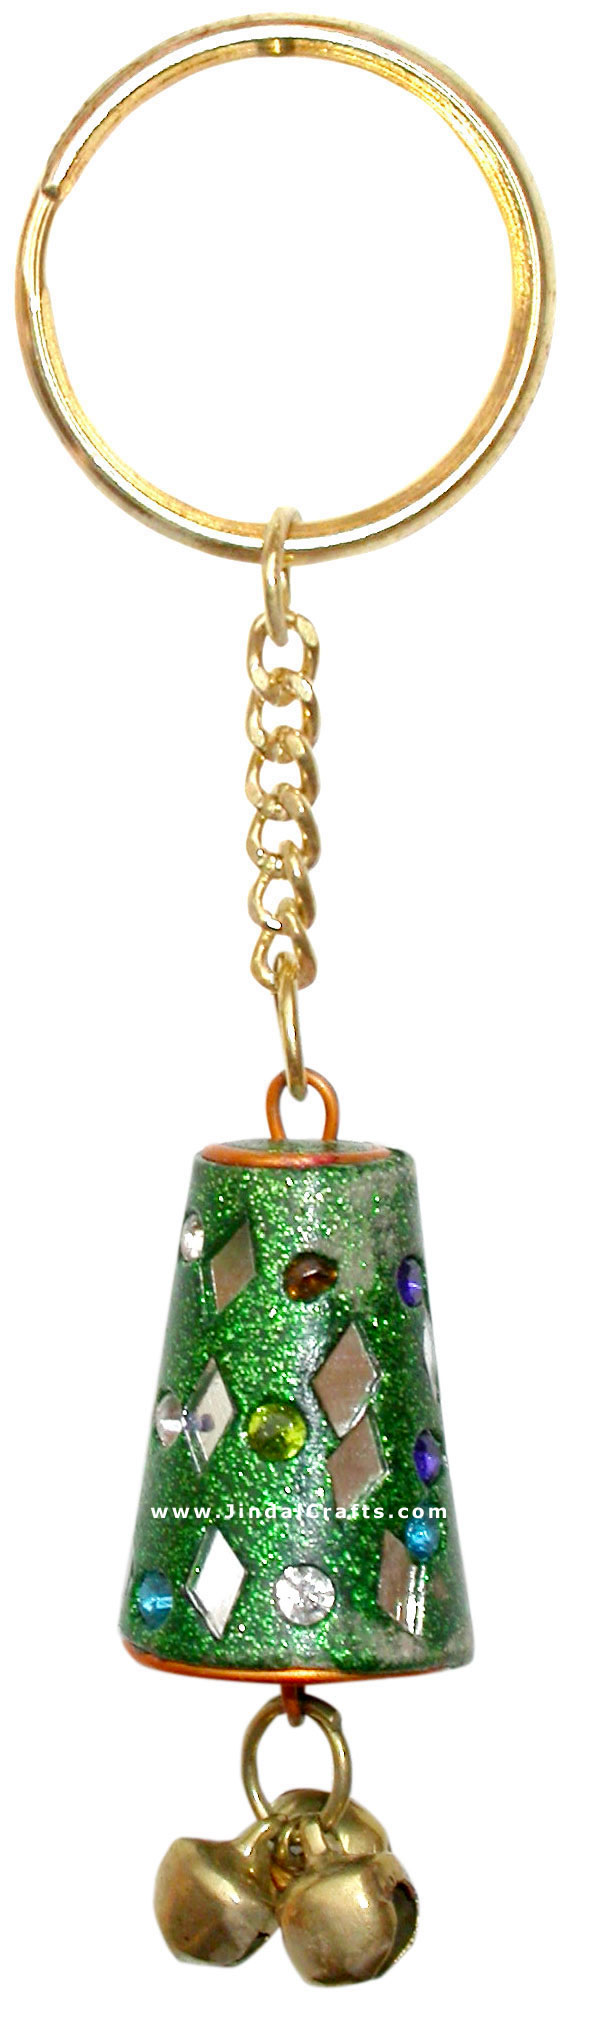 Handmade Colorful Lac Key Chain Key Ring Indian Art